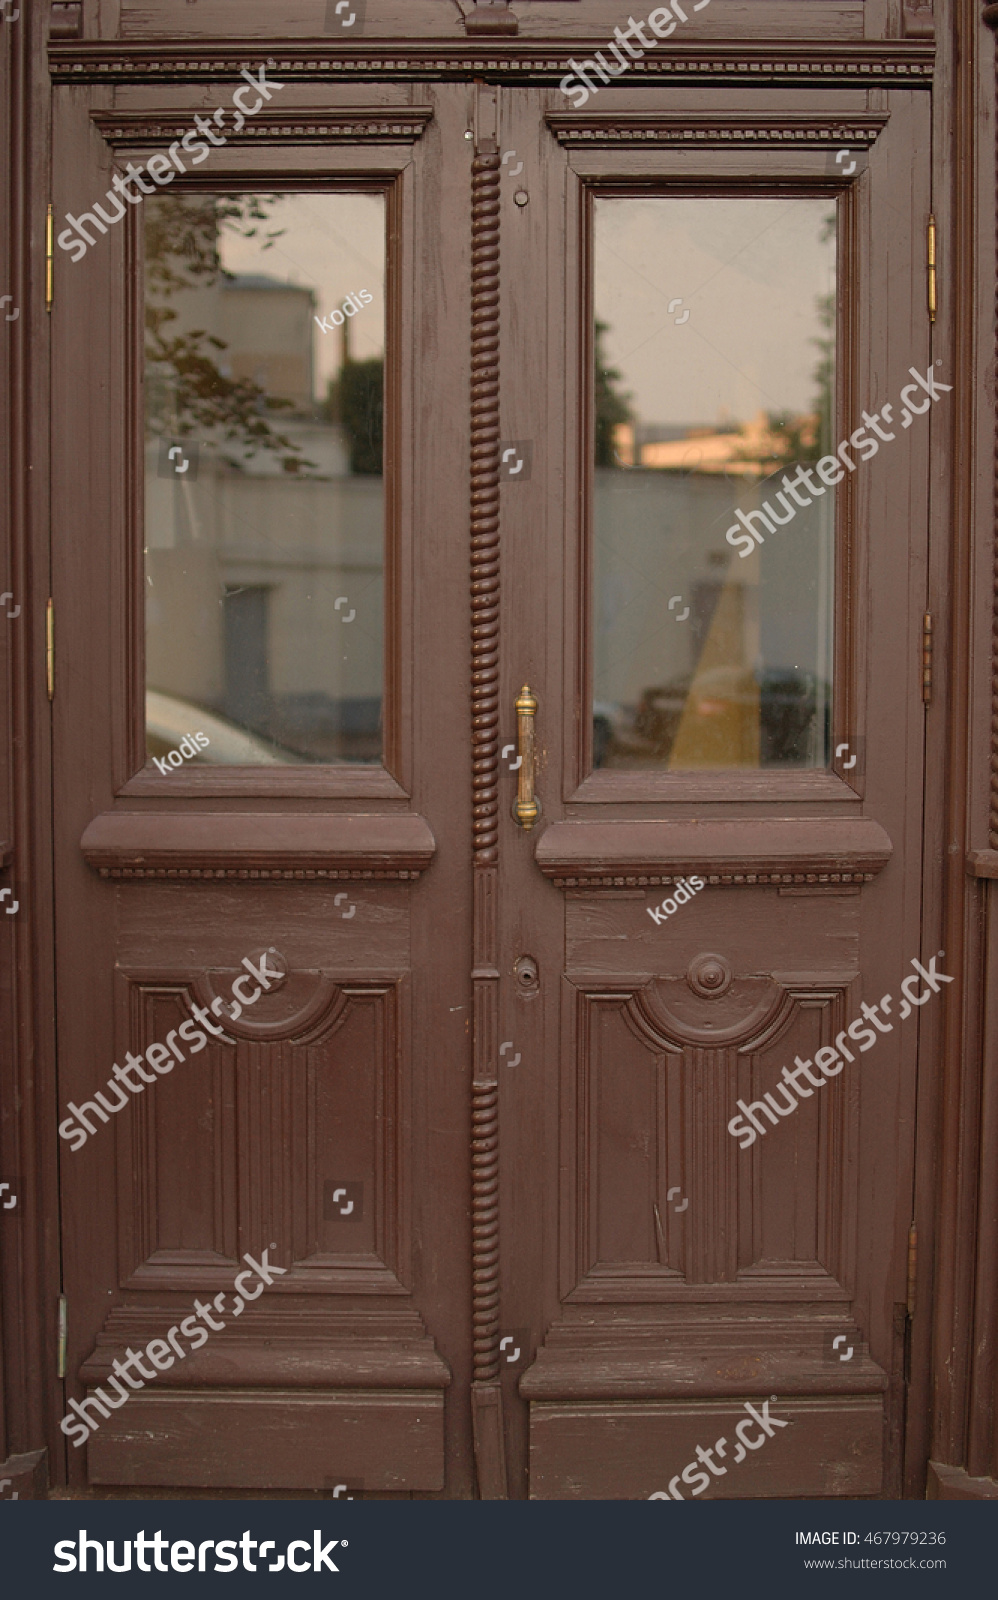 Old Wooden Brown Door Glass Inserts Stock Photo Edit Now 467979236